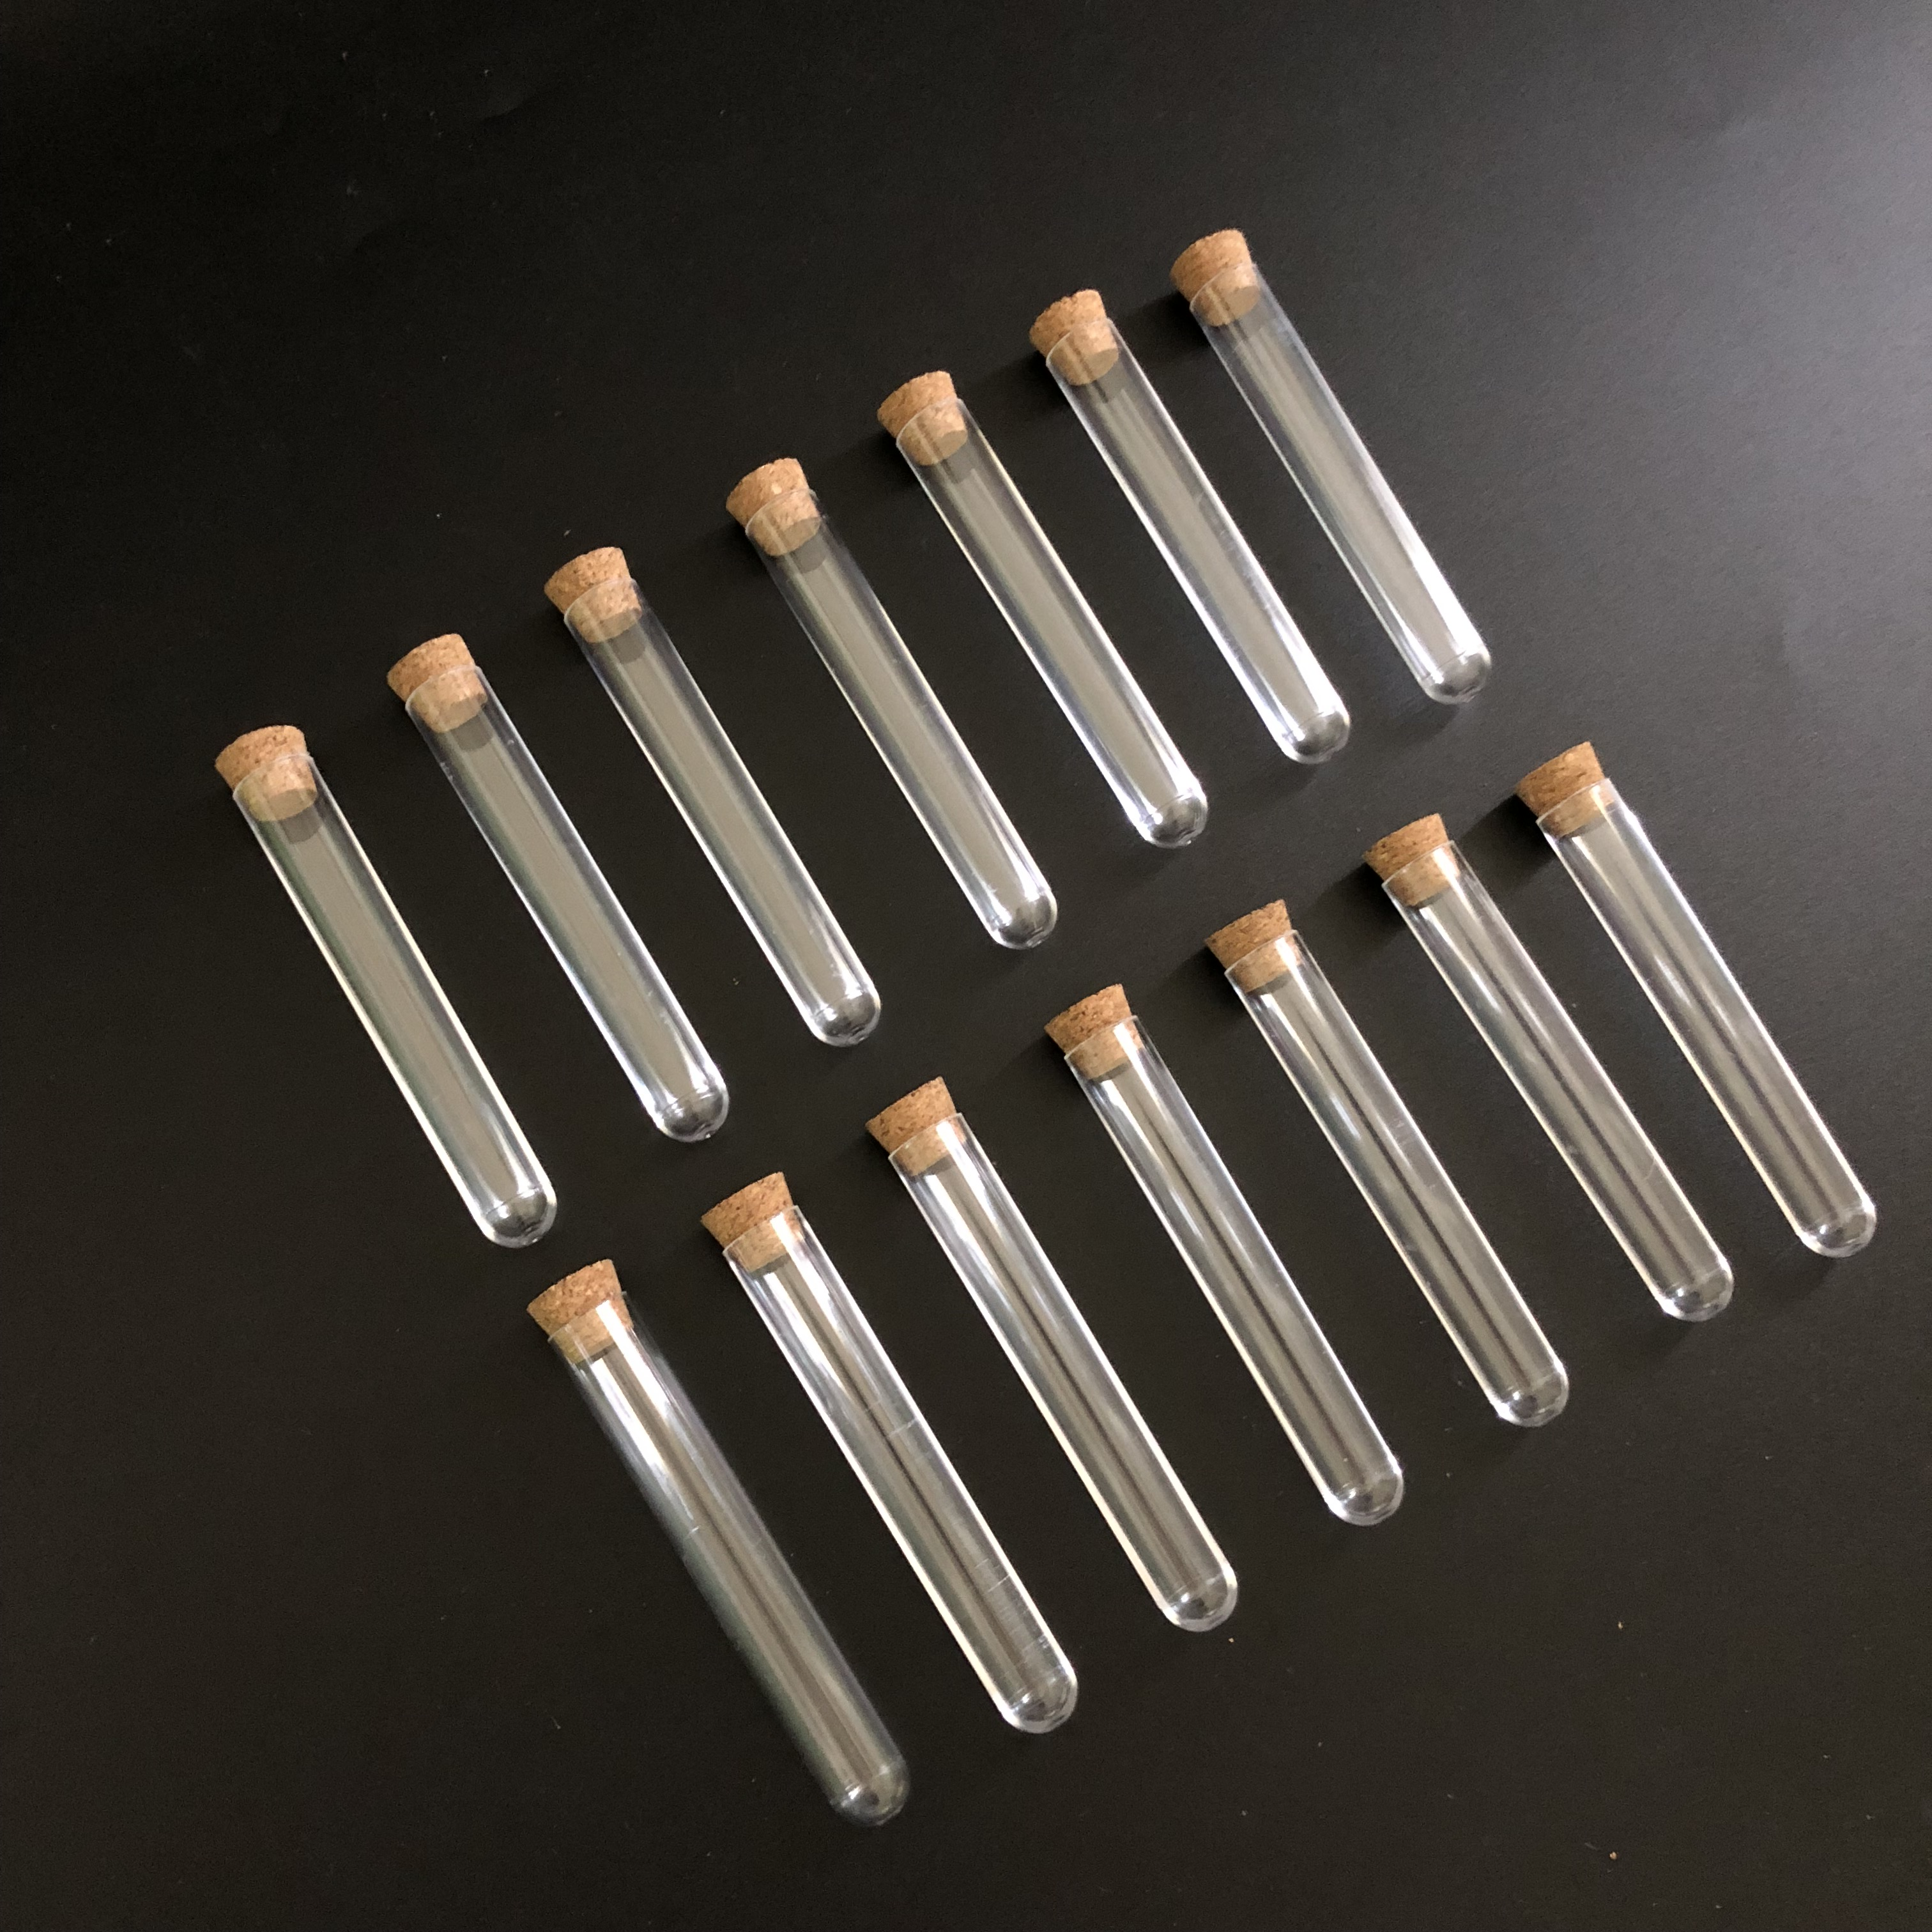 (100pieces/pack) 12*75mm Laboratory Plastic Test Tube With Cork Wood cap Lab Experiment Favor Gift Refillable Bottle